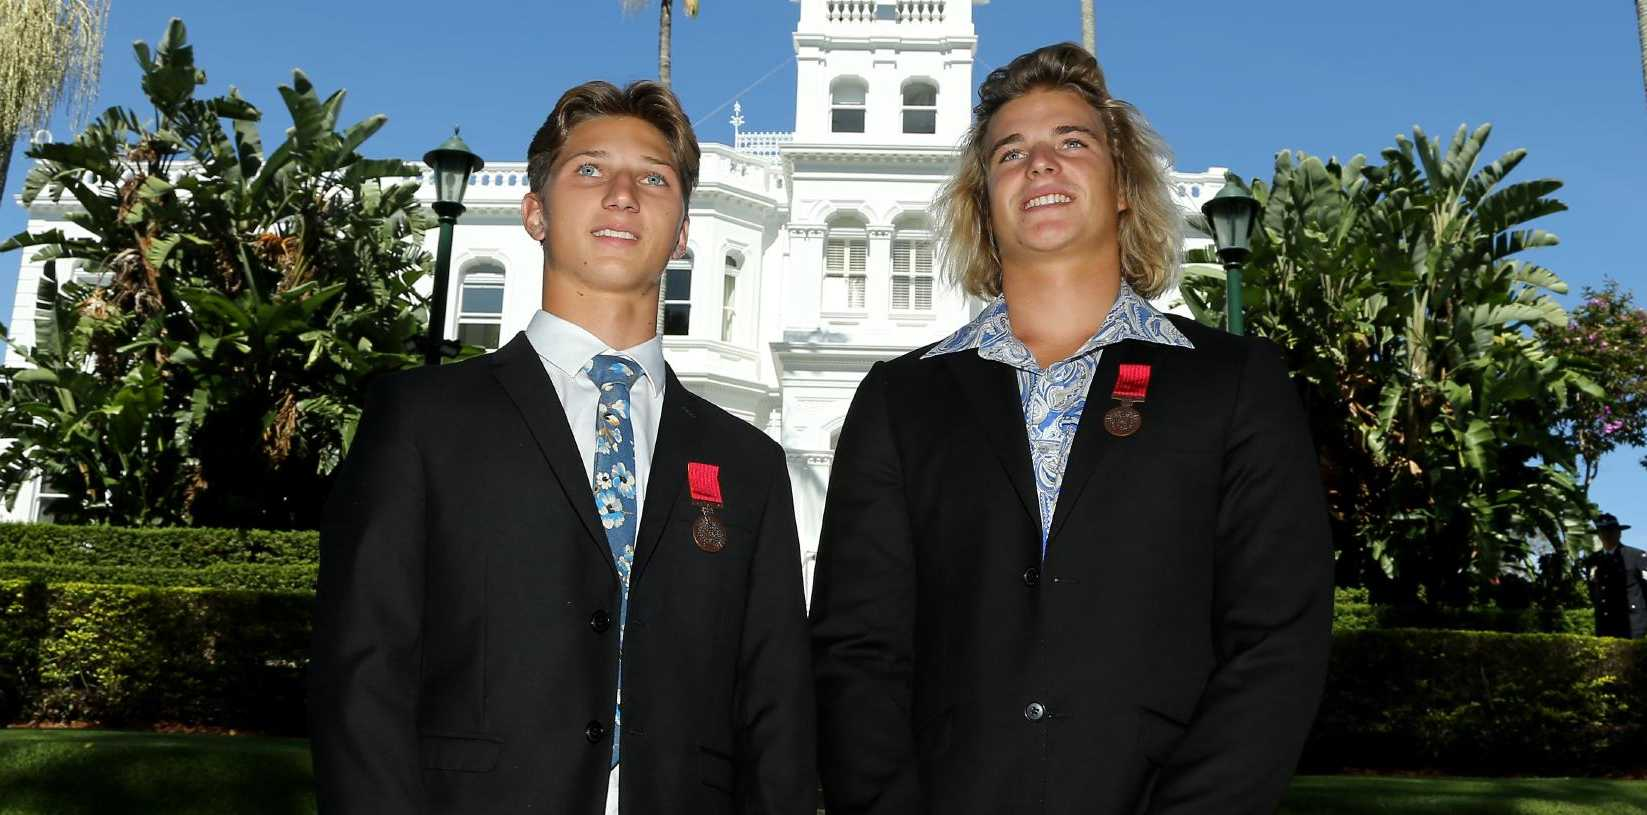 Queensland Governor Paul de Jersey AC yesterday presented Bravery Awards to best mates Tom Harper, 19, and Jae Waters, 17, who went to the aid of a friend being attacked by a shark at Ballina. Picture AAP/David Clark